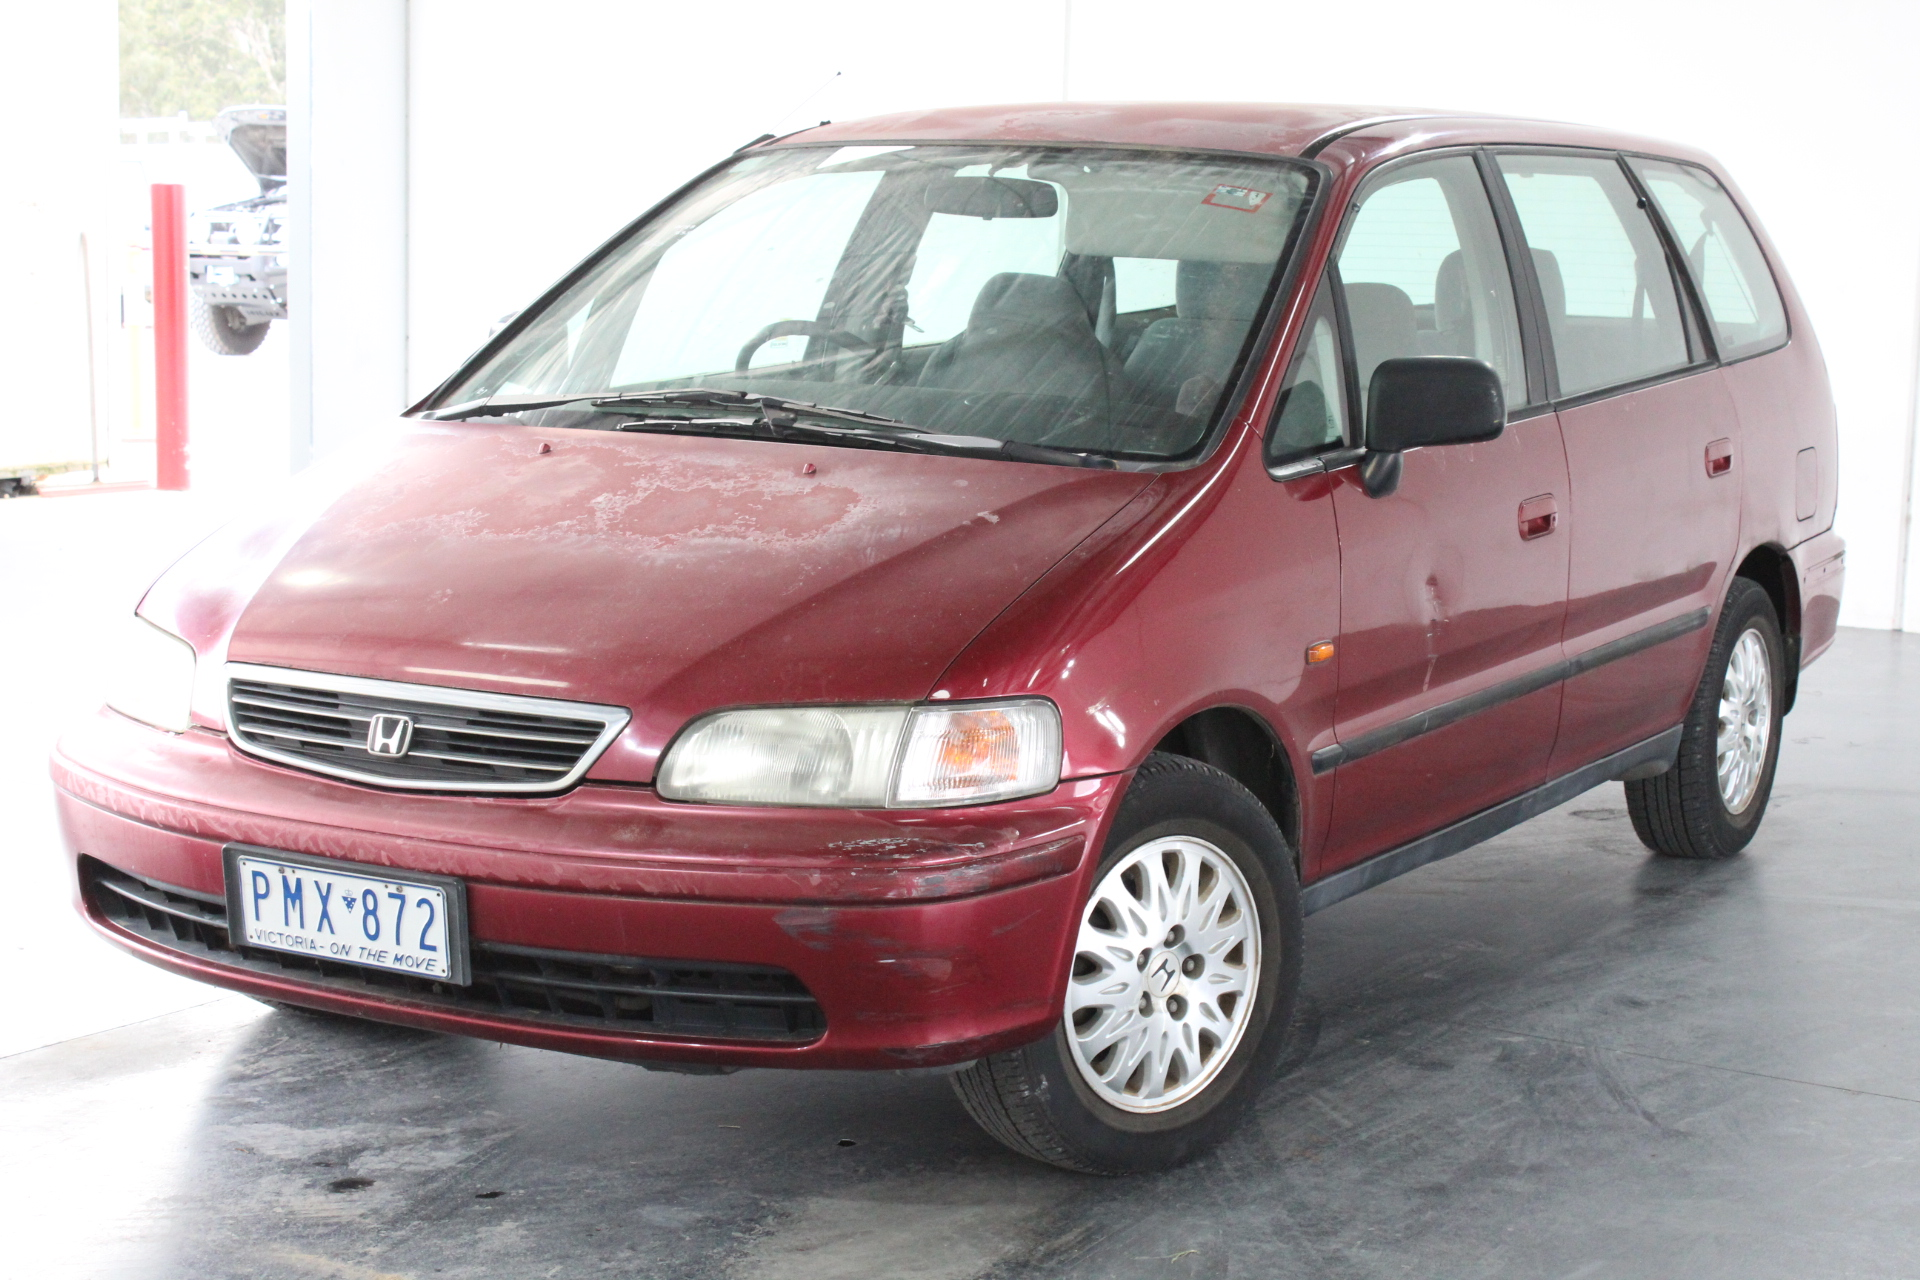 1999 Honda Odyssey Automatic 7 Seats People Mover